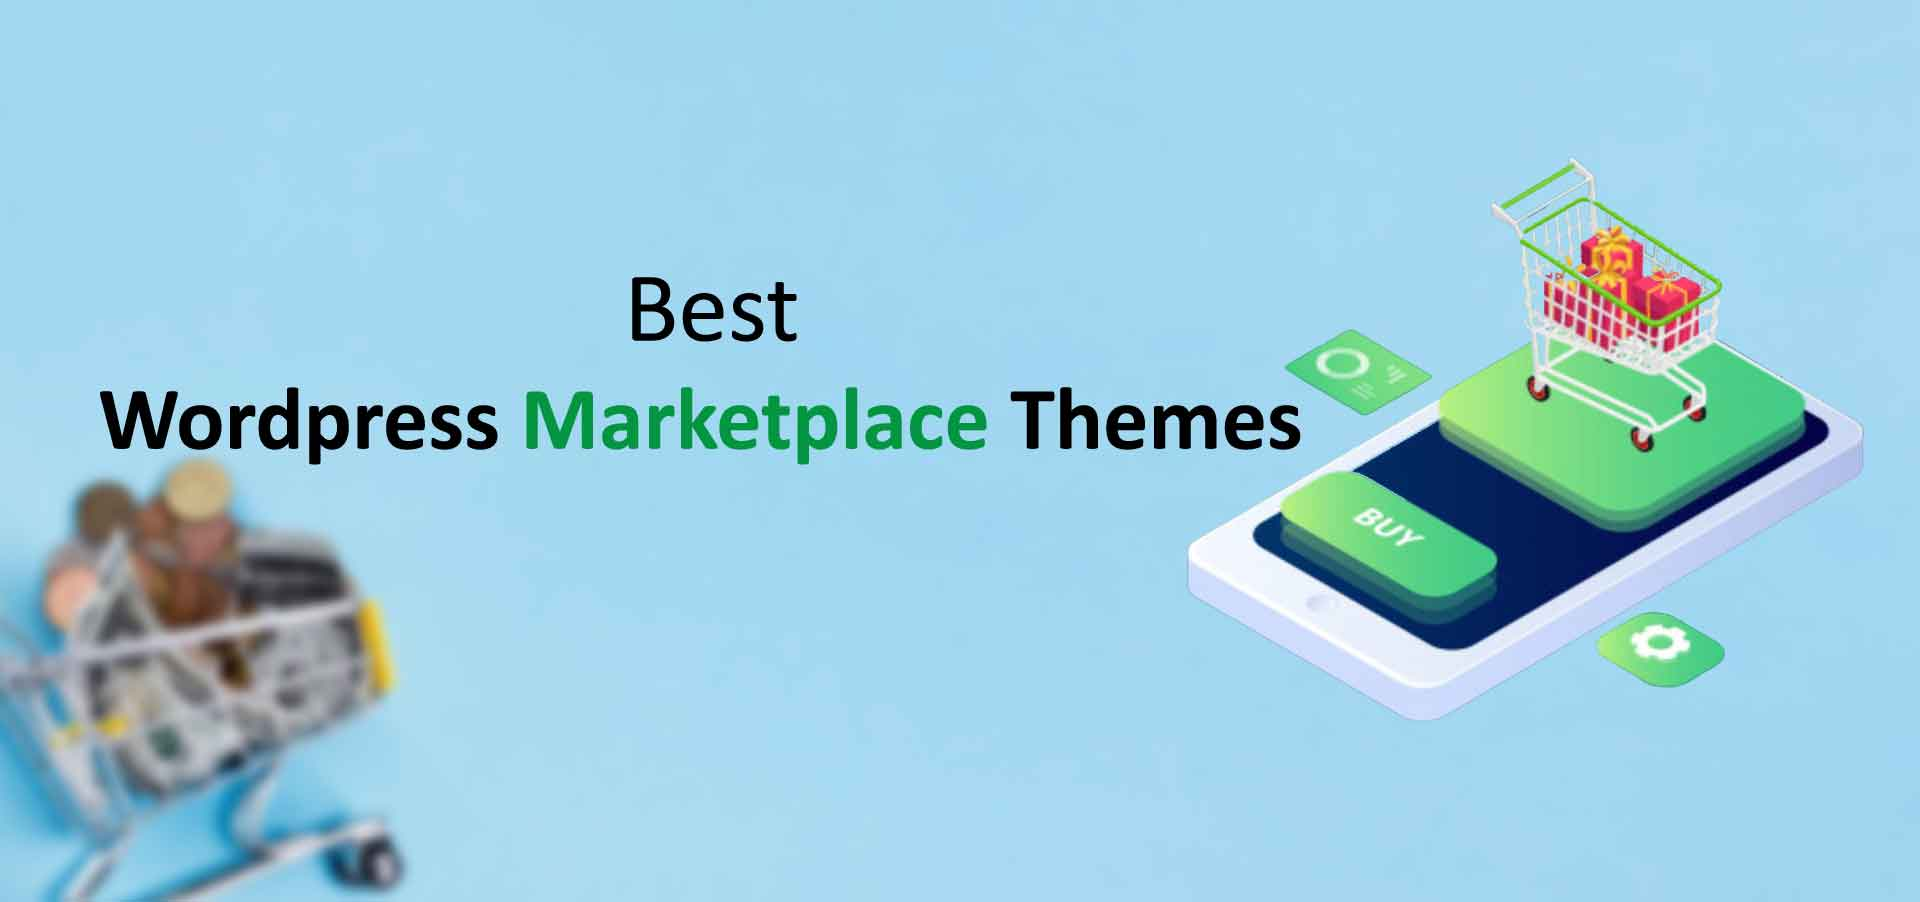 Wordpress Marketplace Themes